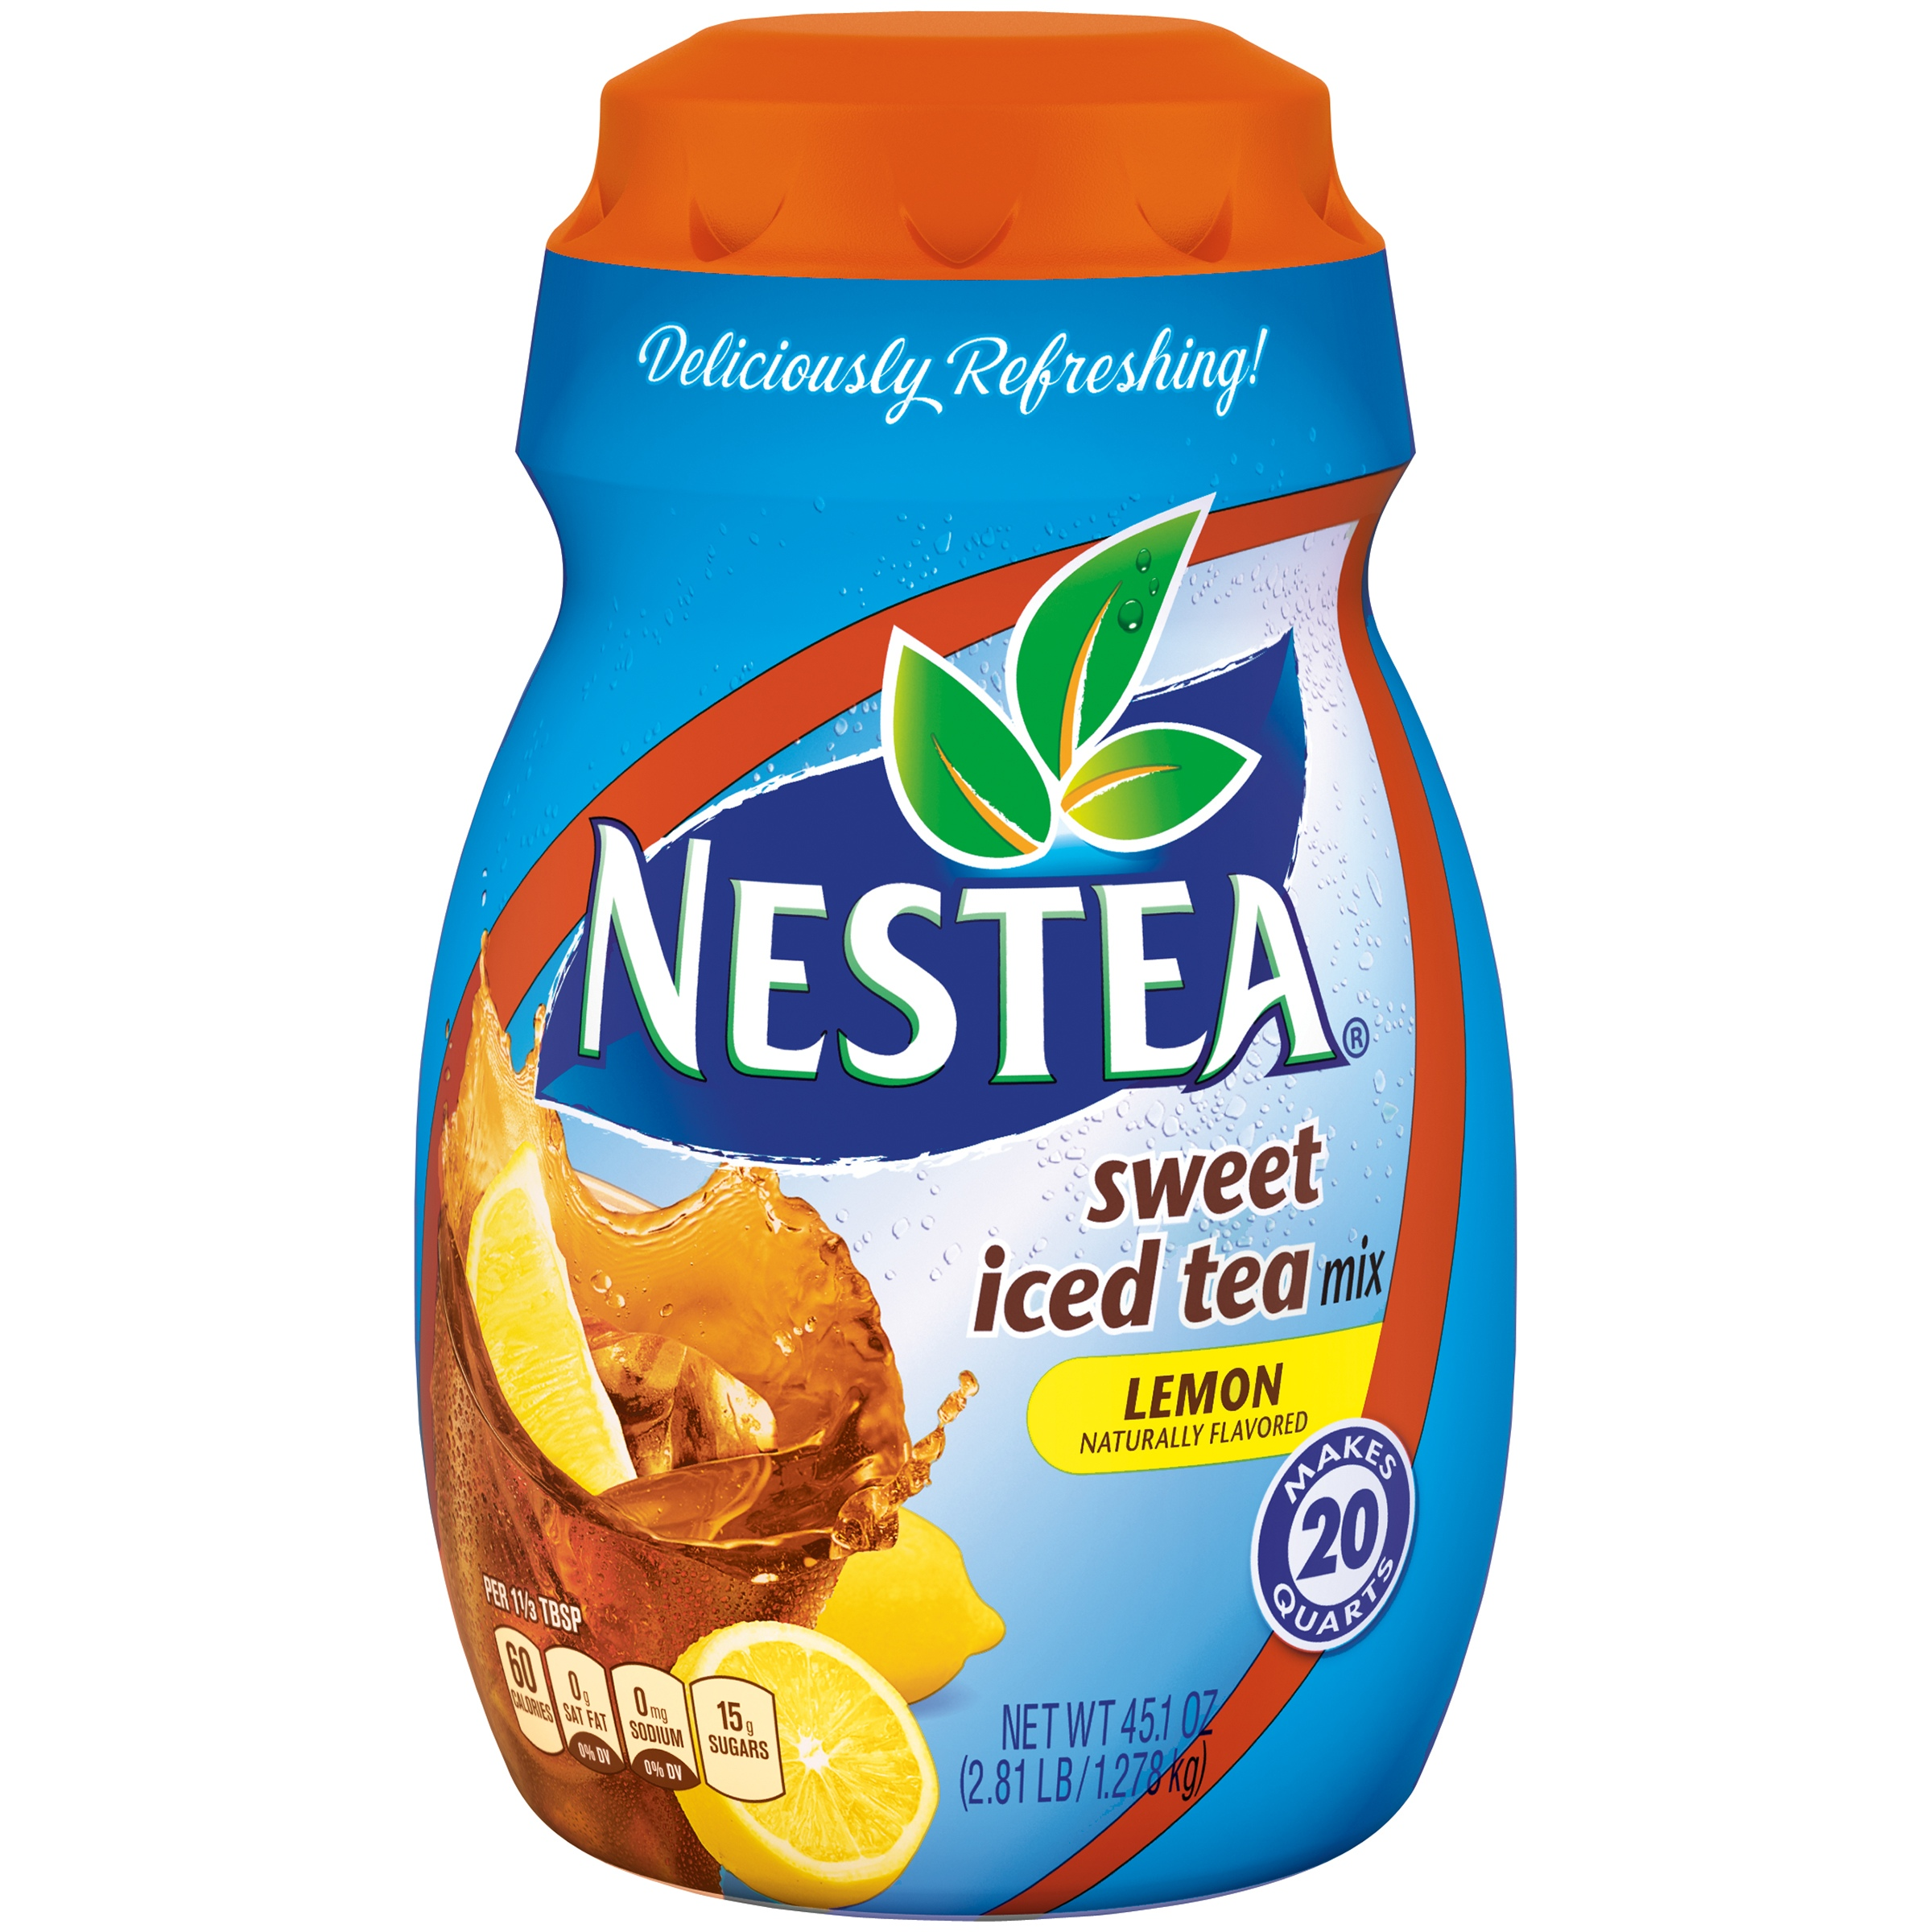 Nestea Drink Mix, Lemon, 45.1 Oz, 1 Count